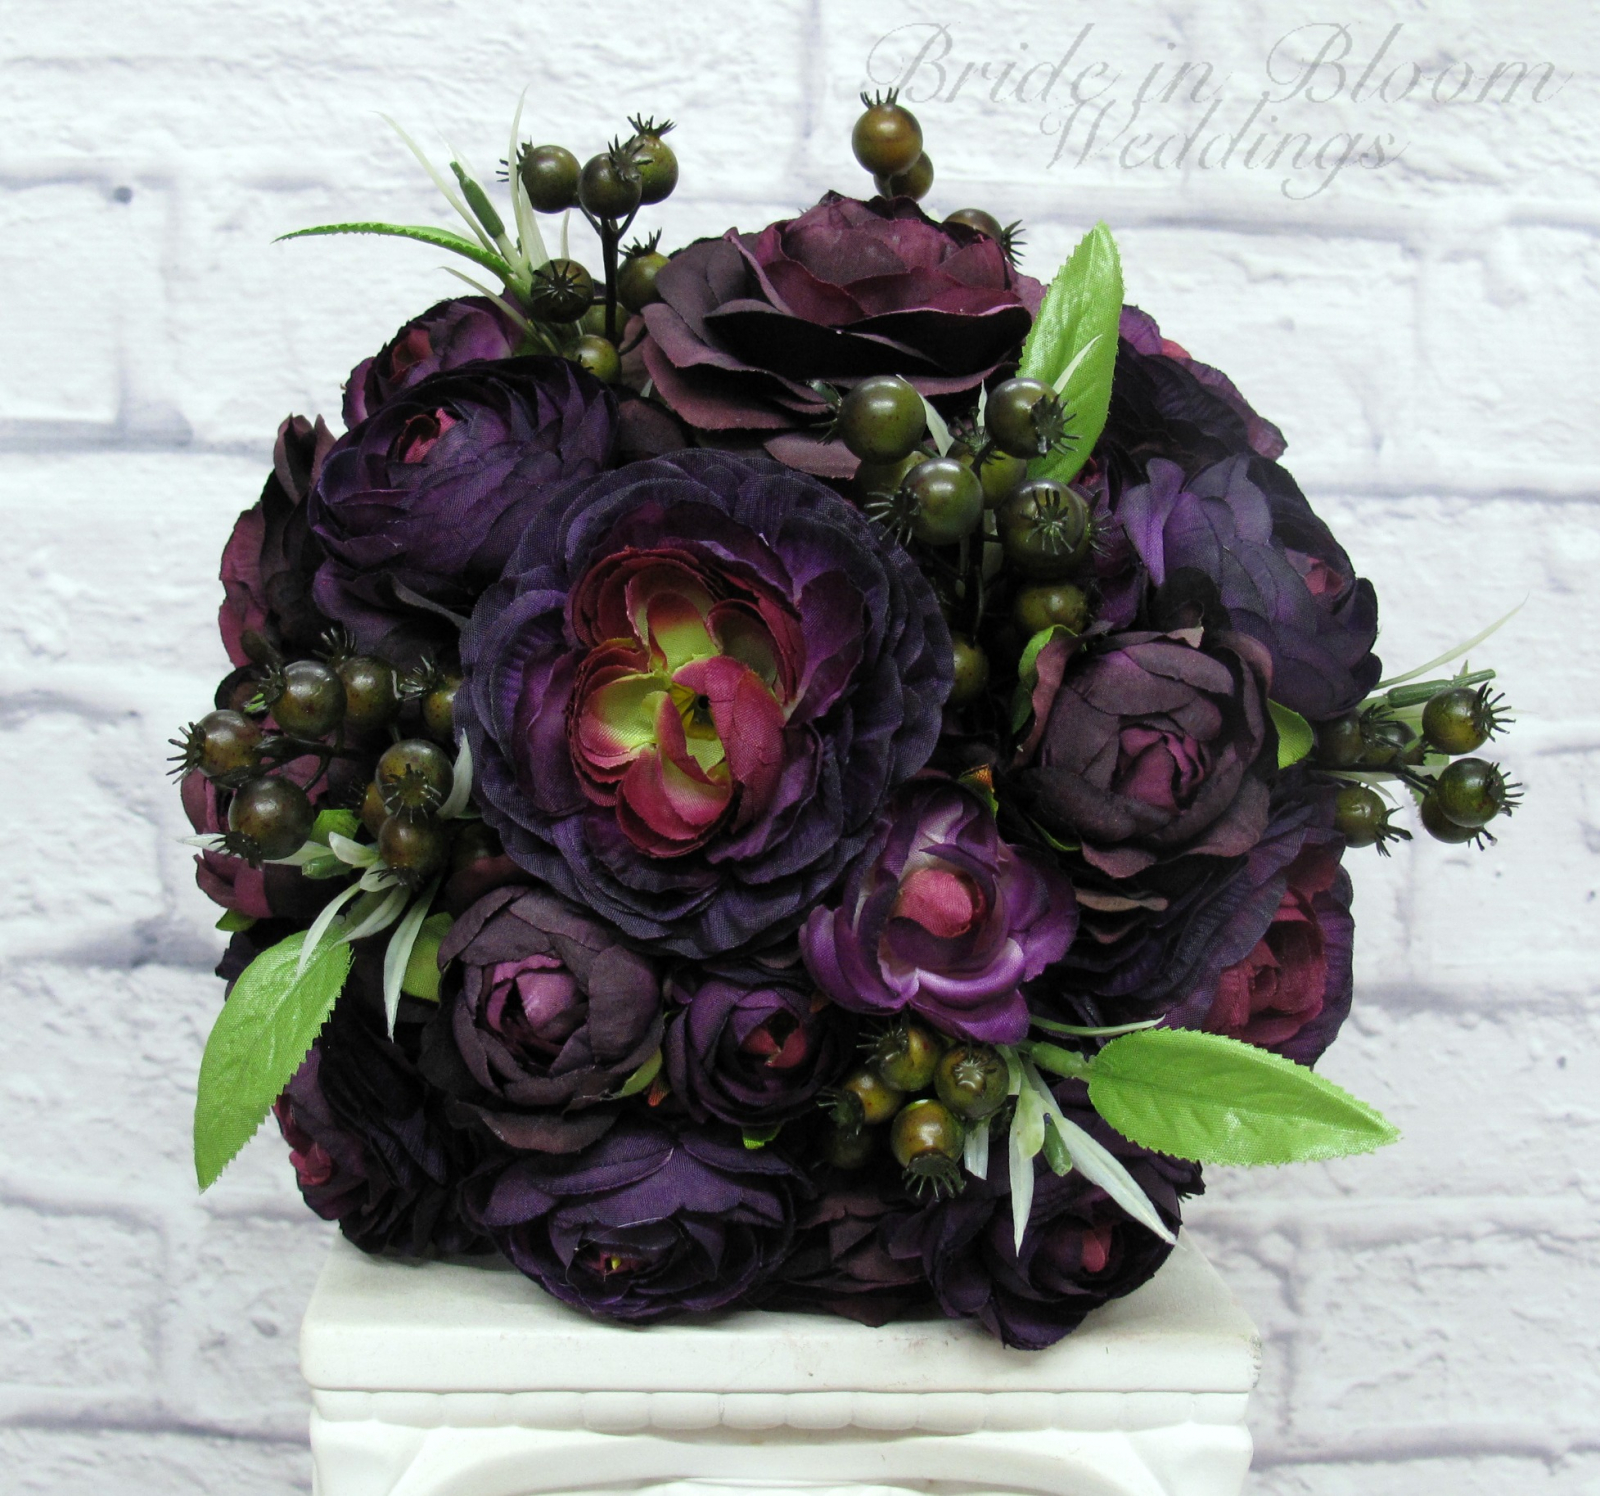 Purple ranunculus wedding bouquet bride in bloom purple ranunculus wedding bouquet silk flower bridal bouquet izmirmasajfo